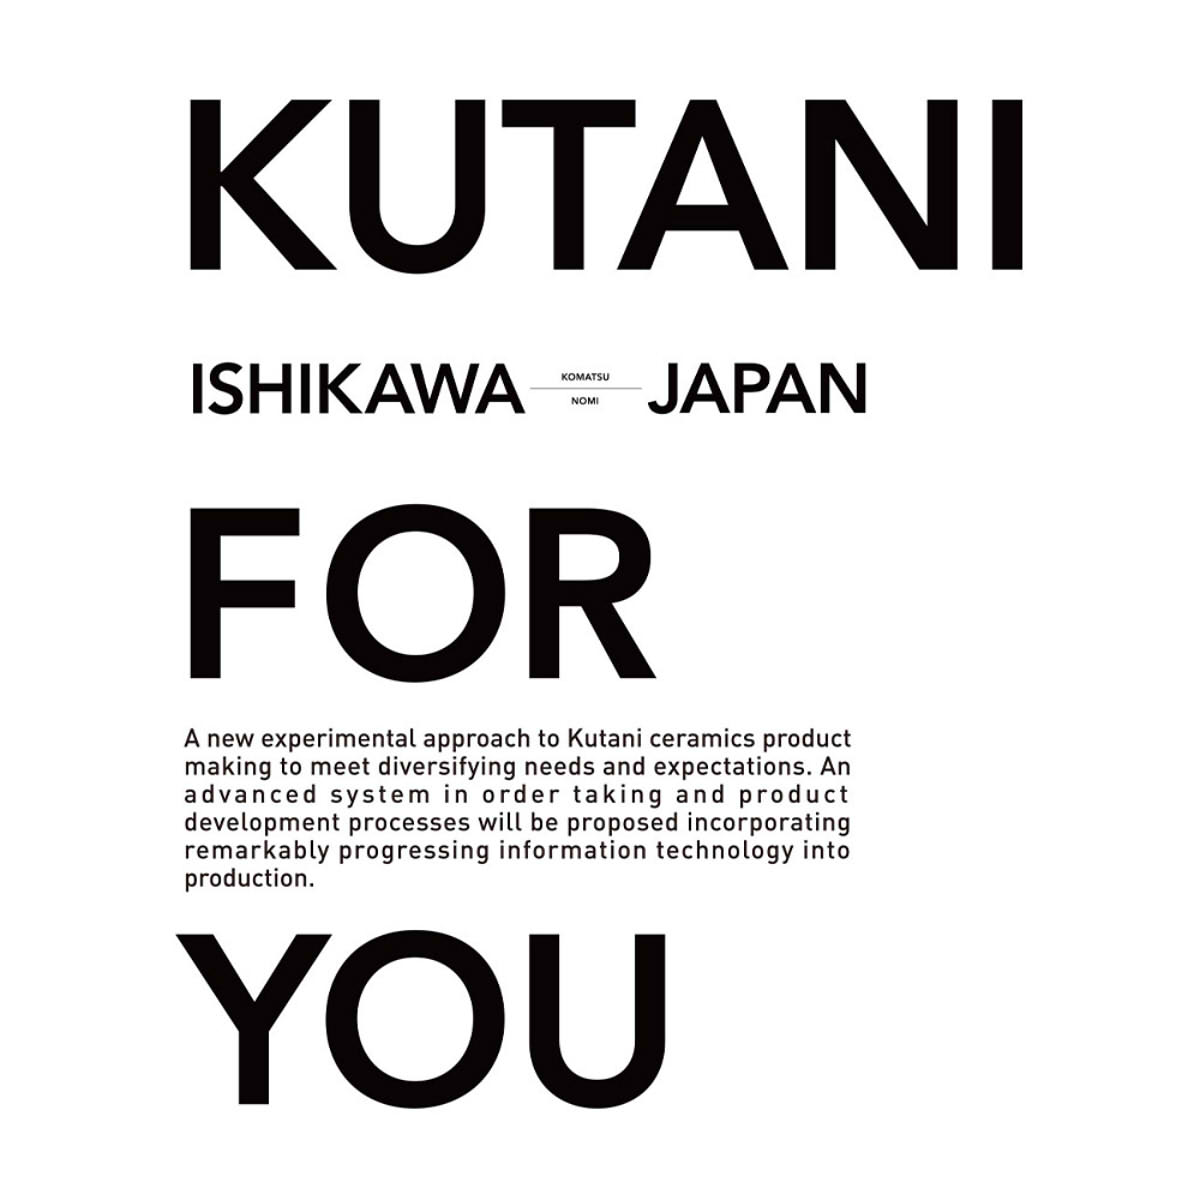 総合芸術祭KUTANism 「KUTANI FOR YOU」